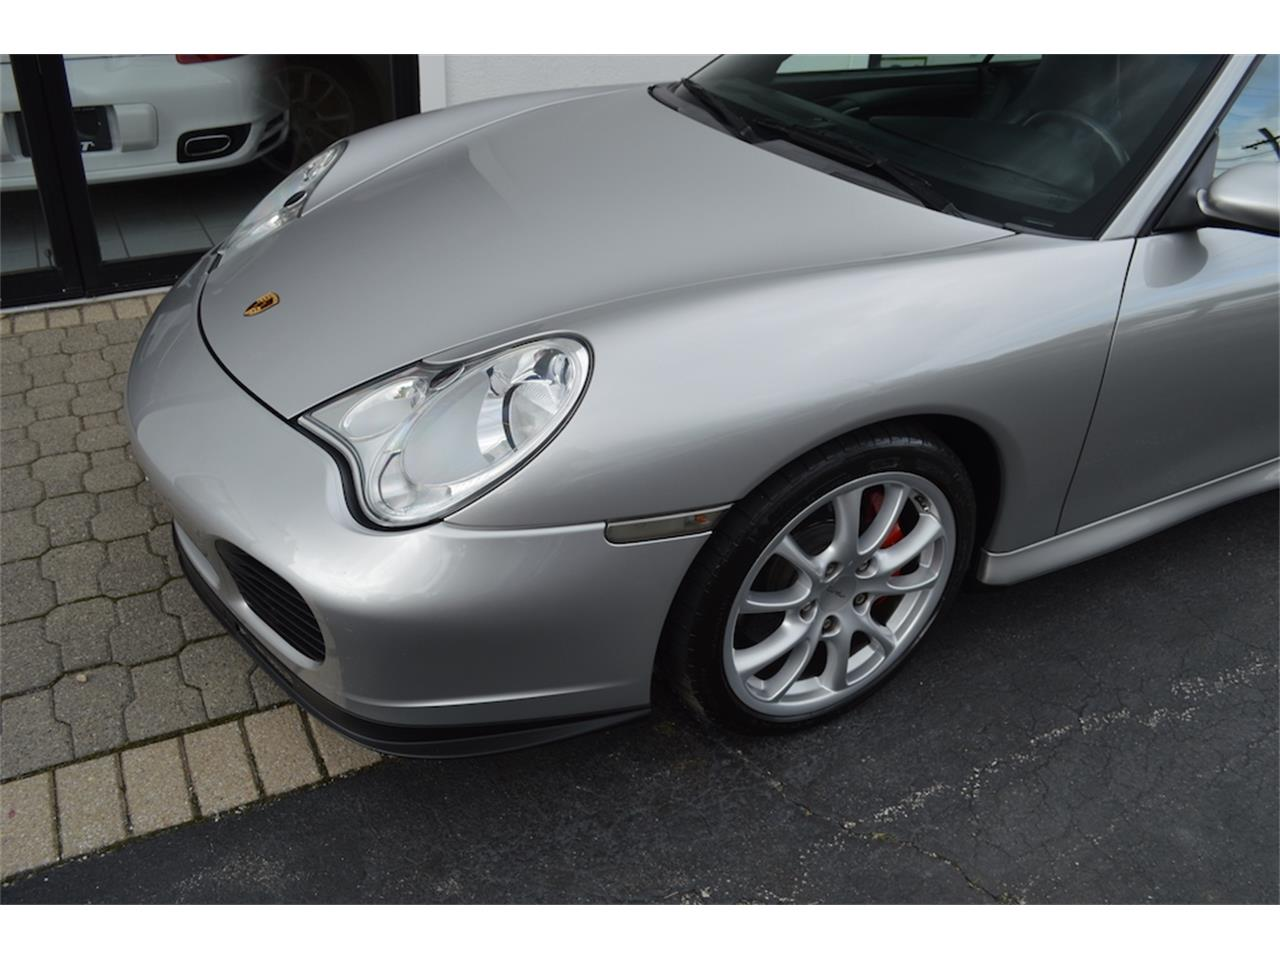 Large Picture of 2004 Porsche 996 Turbo Cabriolet located in West Chester Pennsylvania - $46,500.00 Offered by Holt Motorsports - NQV0